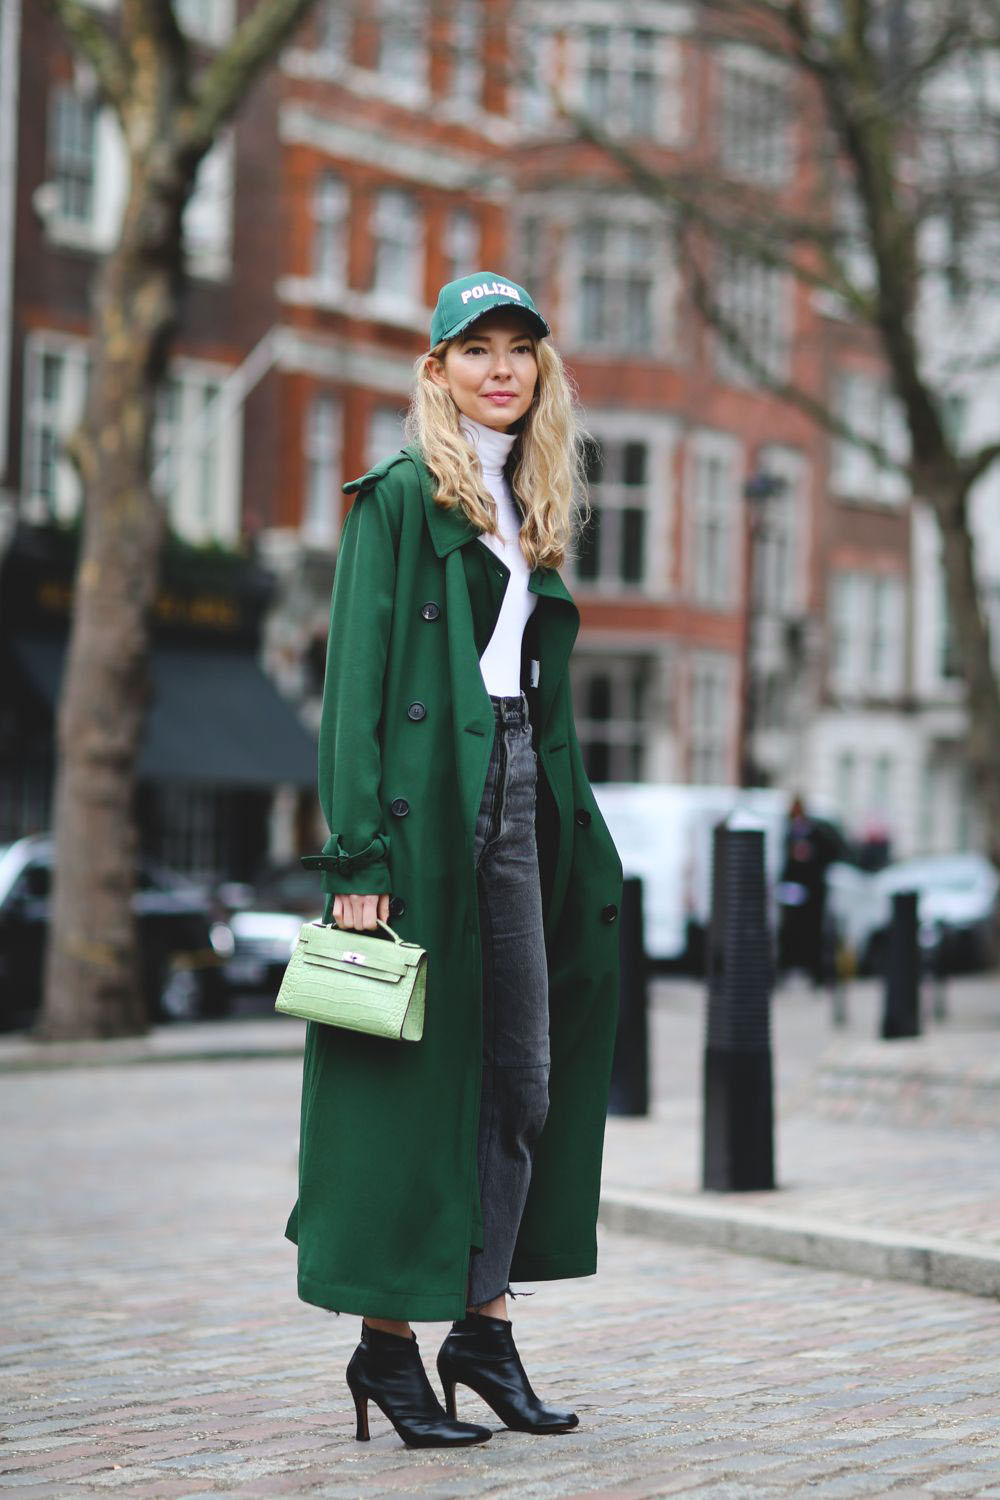 Chic Colorful Coats - Roberta Benteler in a Green Duster Coat // Notjessfashion.com